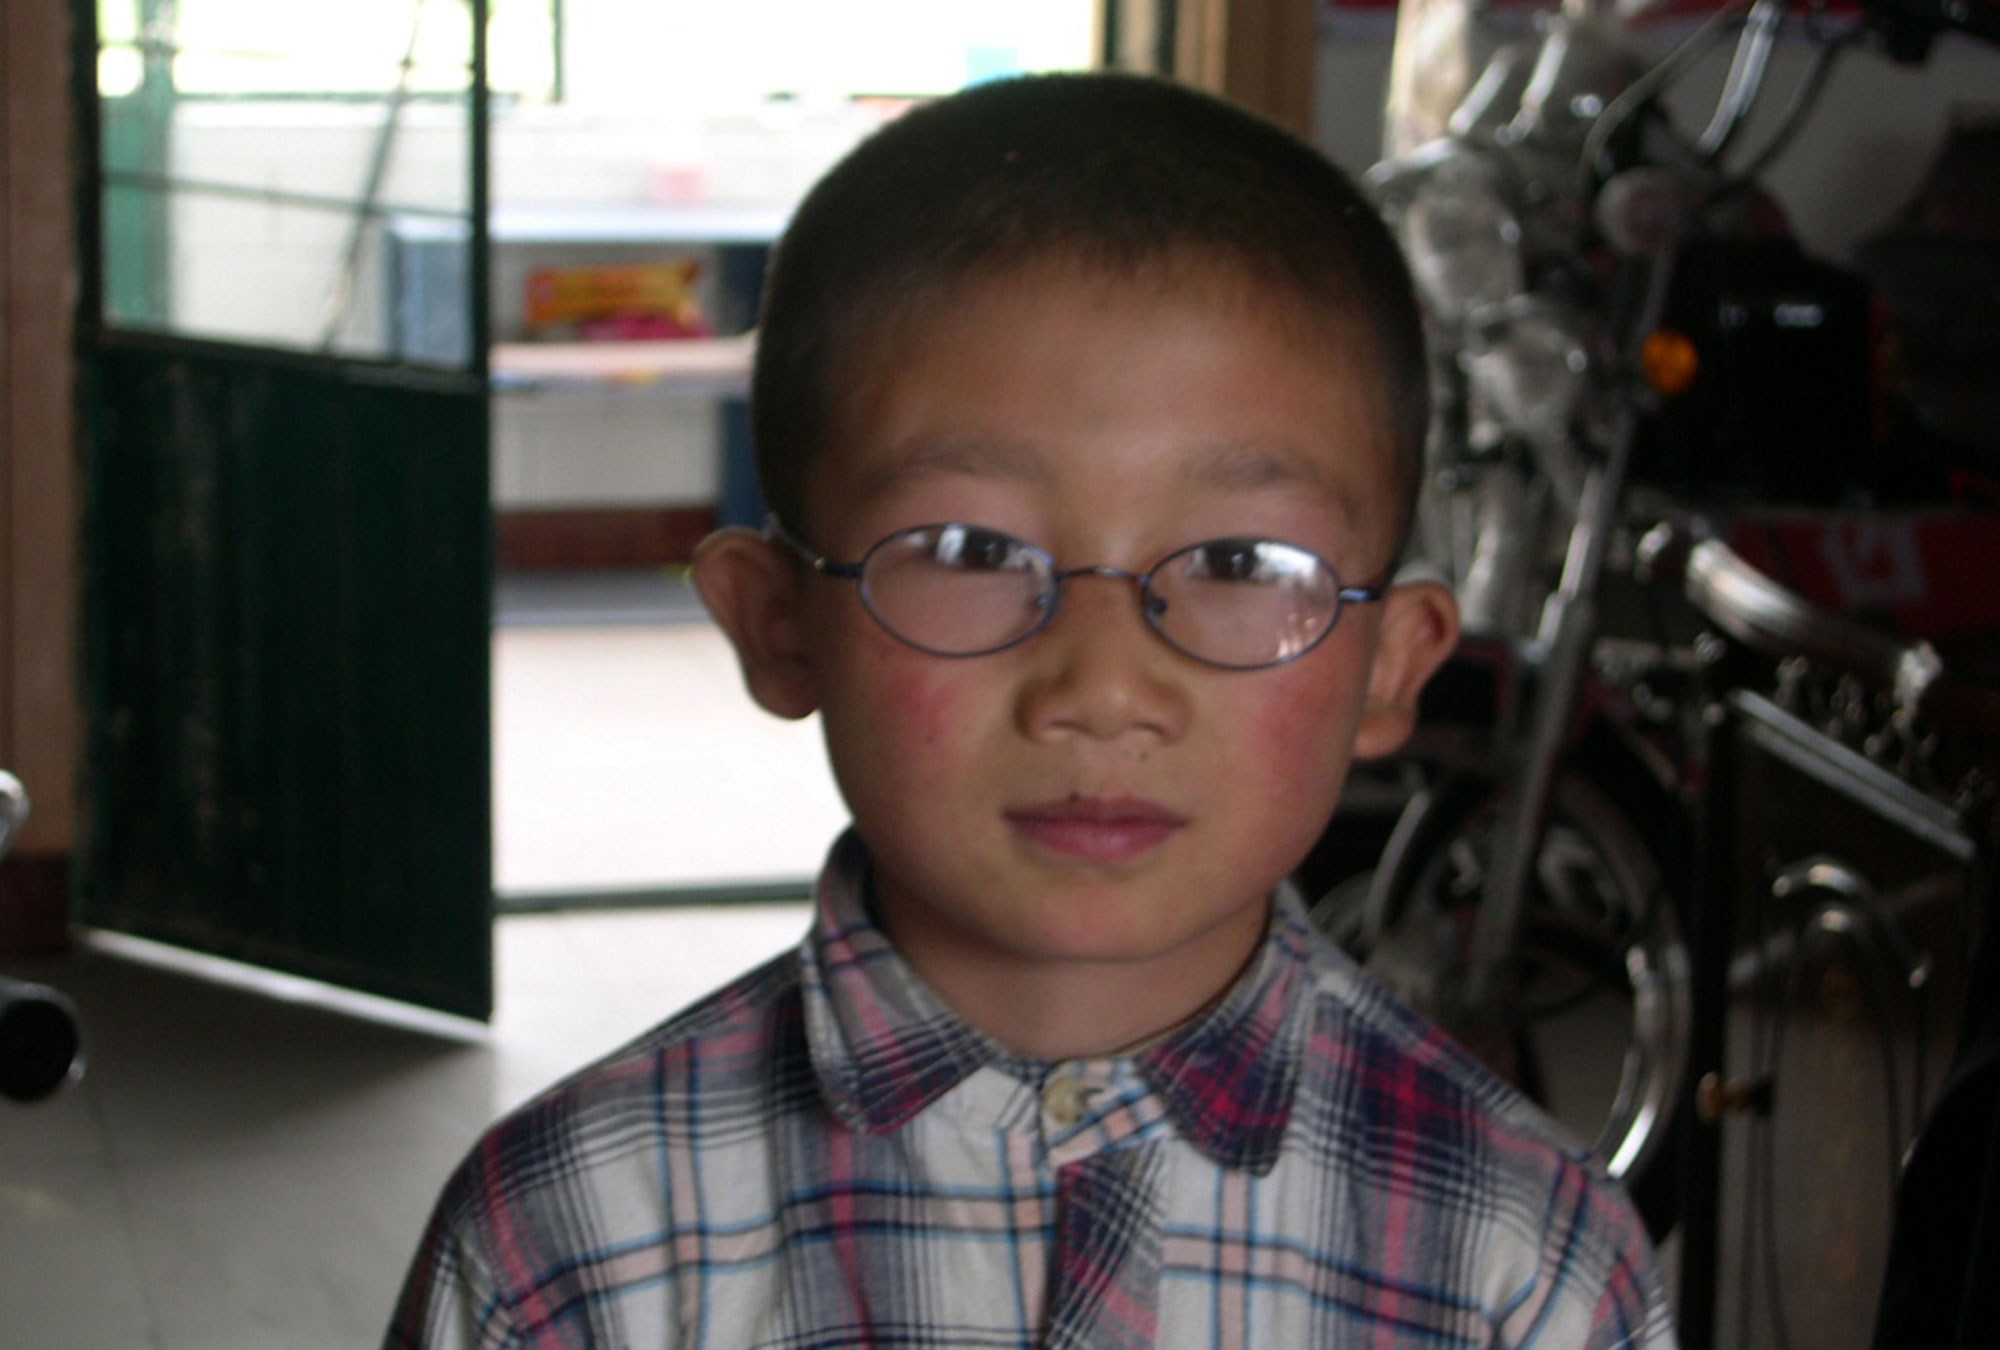 A schoolboy shows off his new glasses in Gansu Province, China.